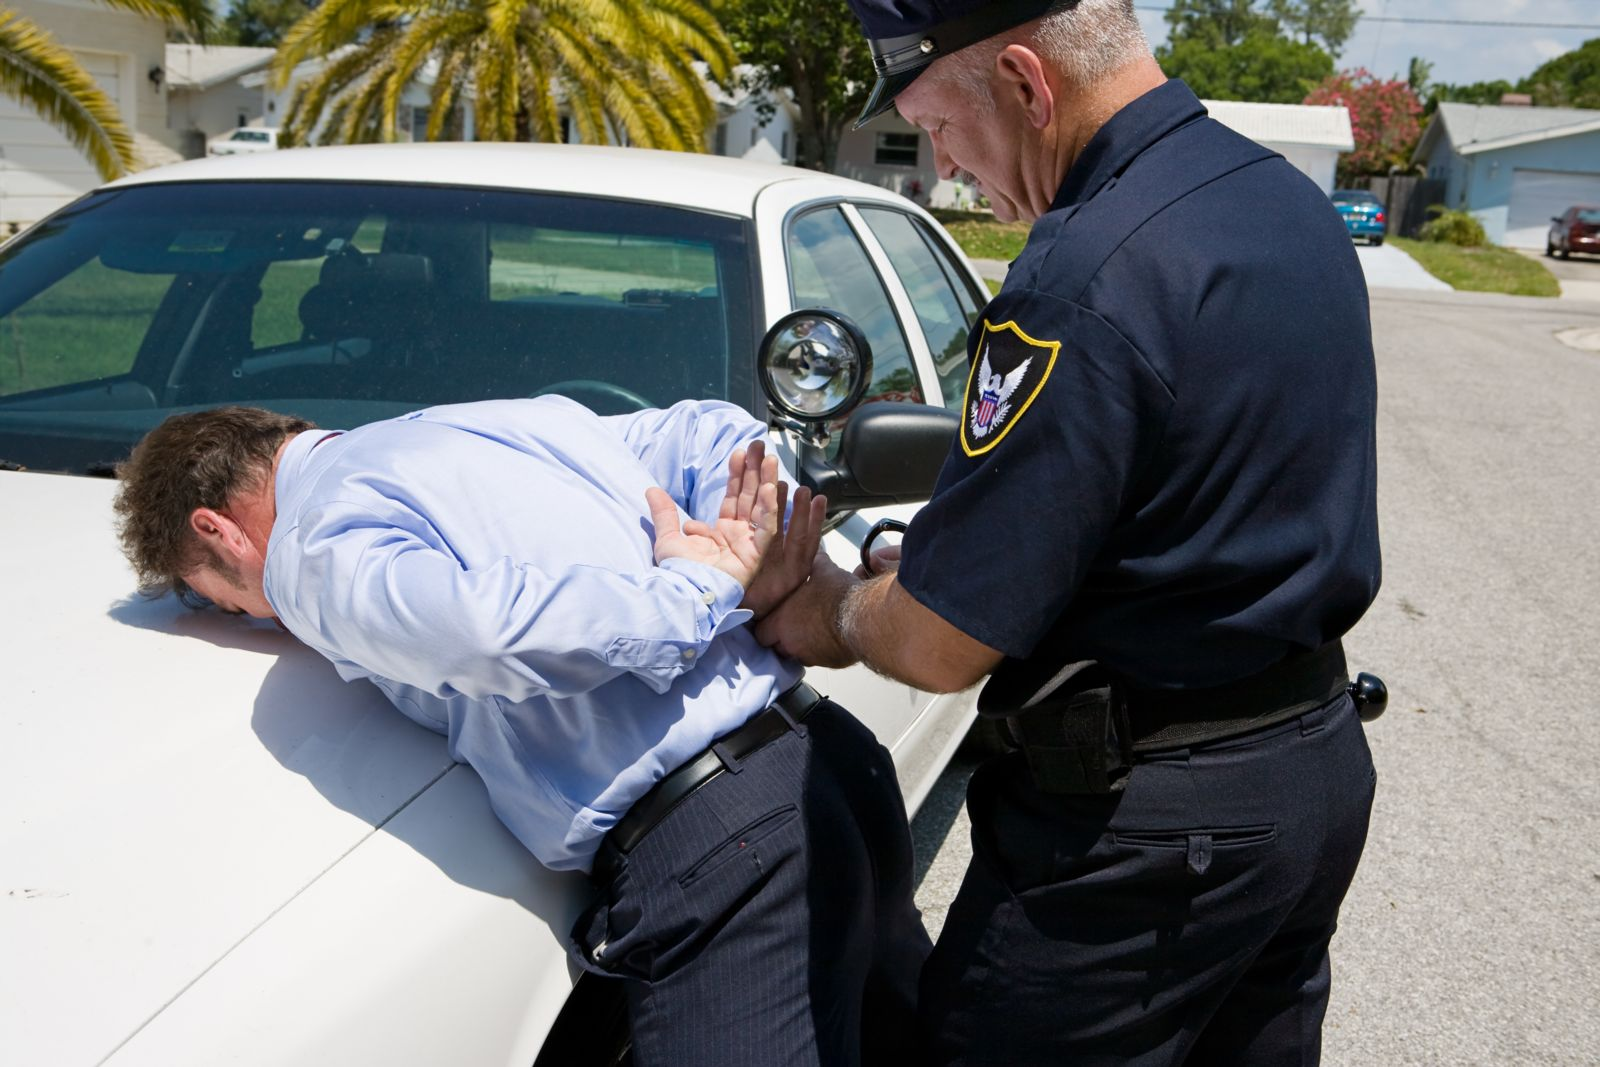 If you're arrested for a criminal law offense, you need a criminal defense lawyer